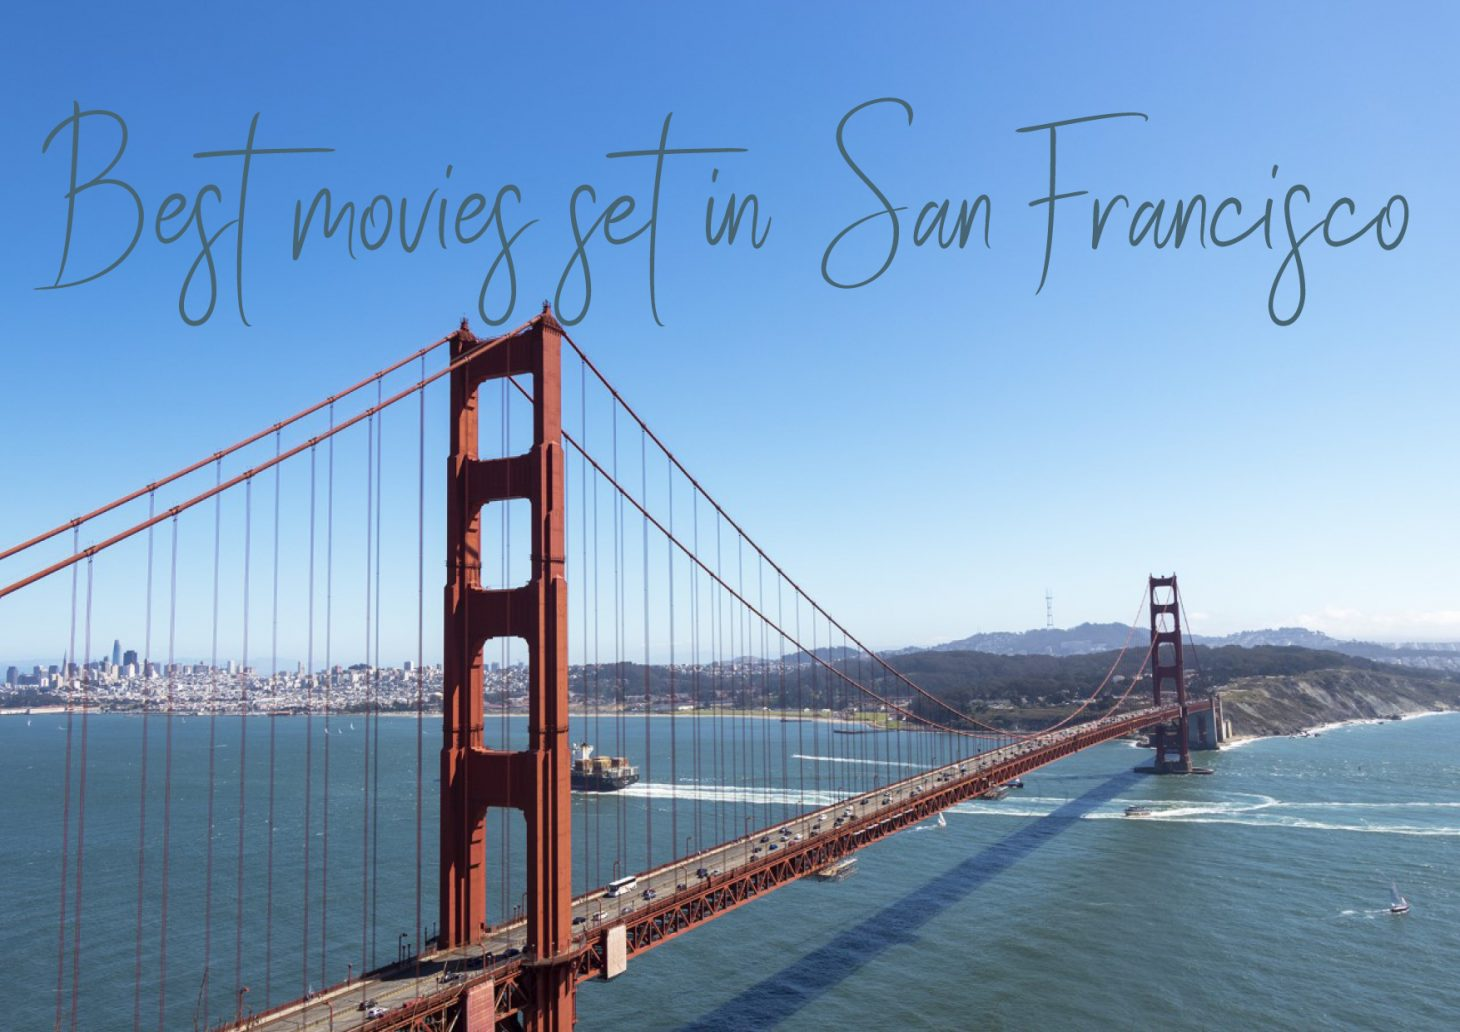 Best movies set in San Francisco